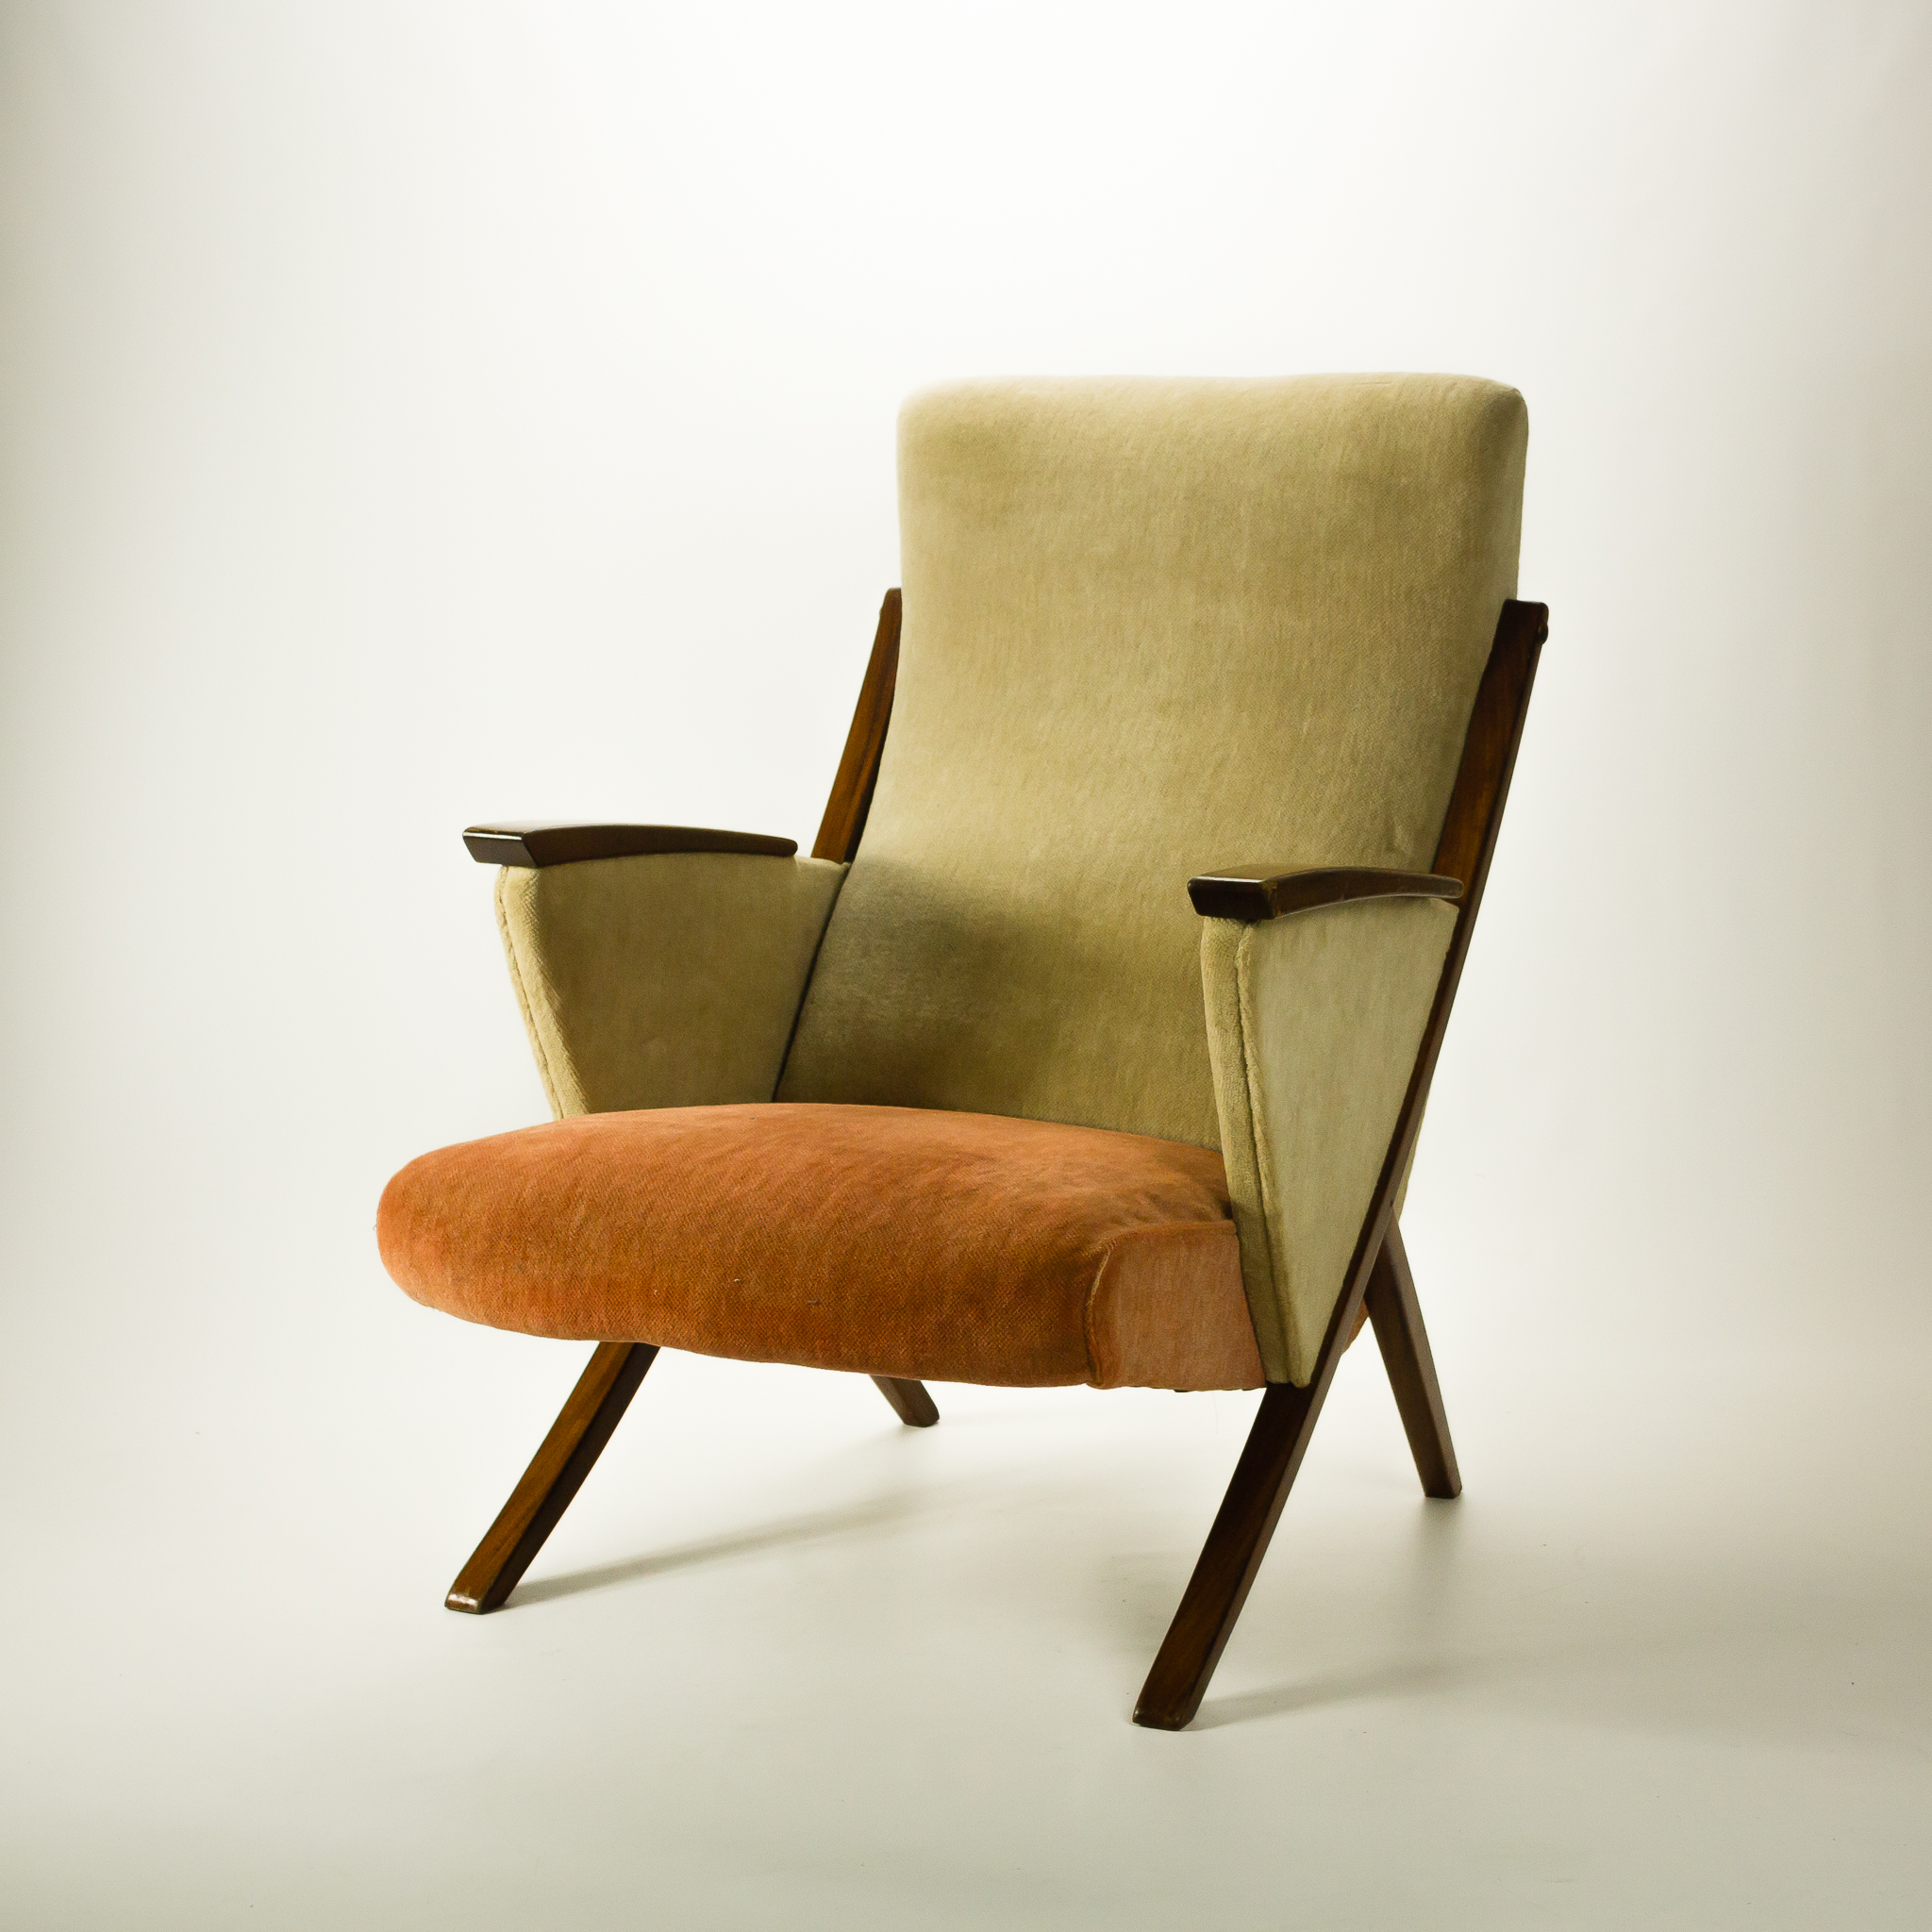 60 s fauteuil oranje bruin beige teak barbmama. Black Bedroom Furniture Sets. Home Design Ideas